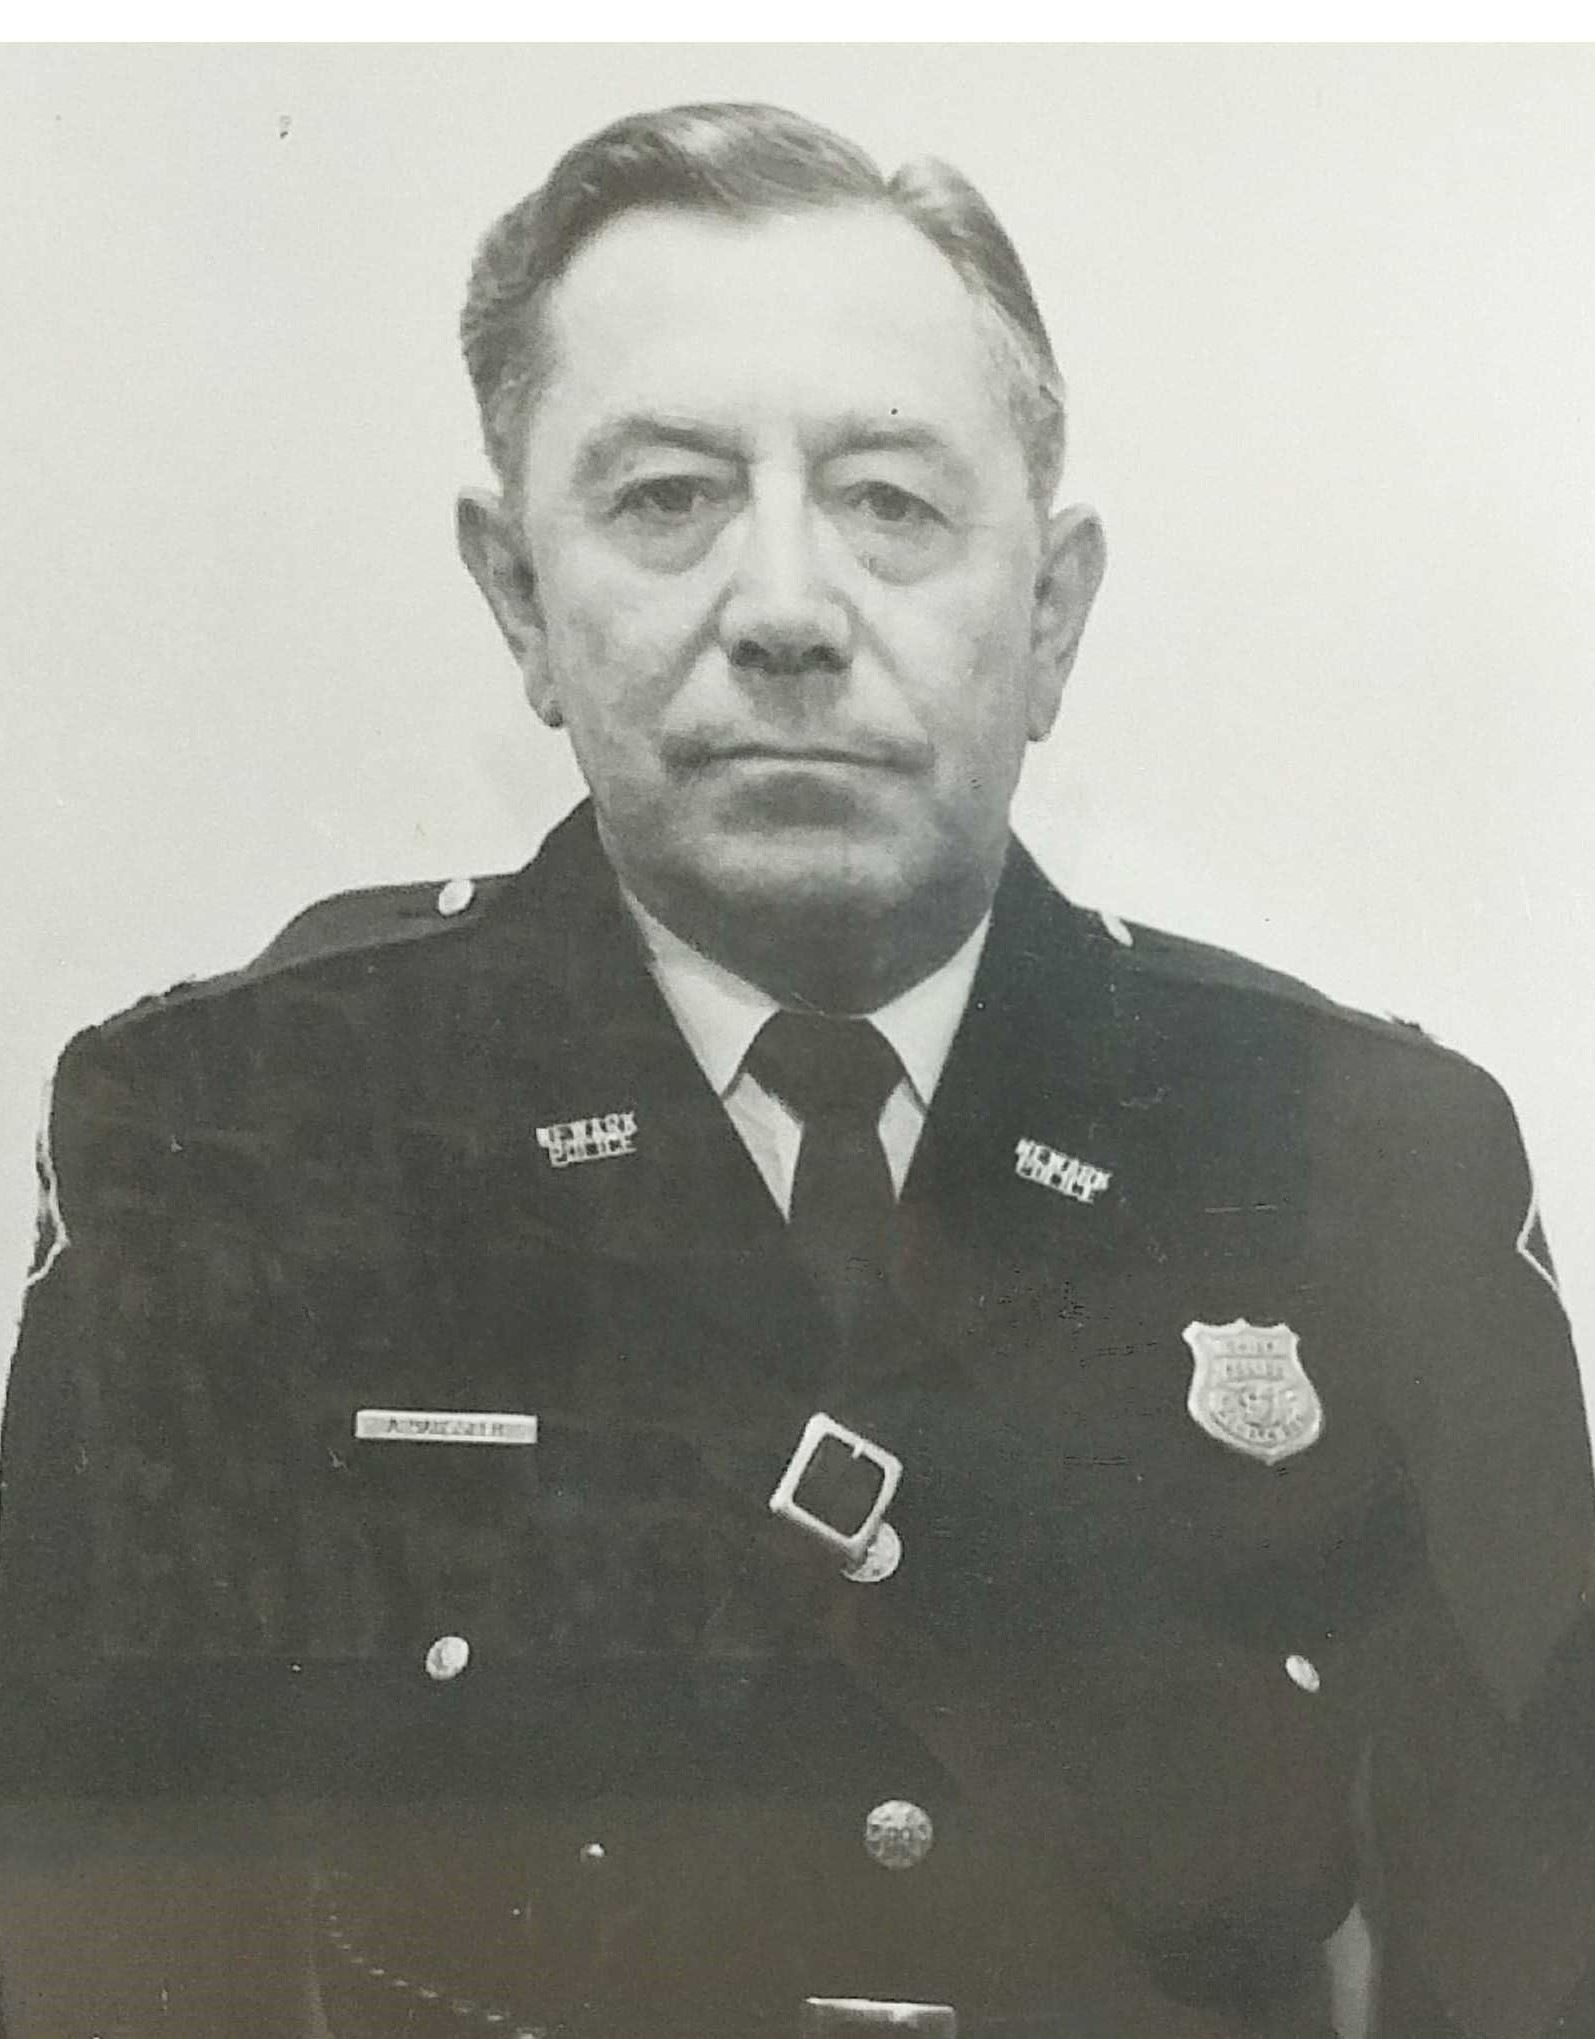 Chief Haussler